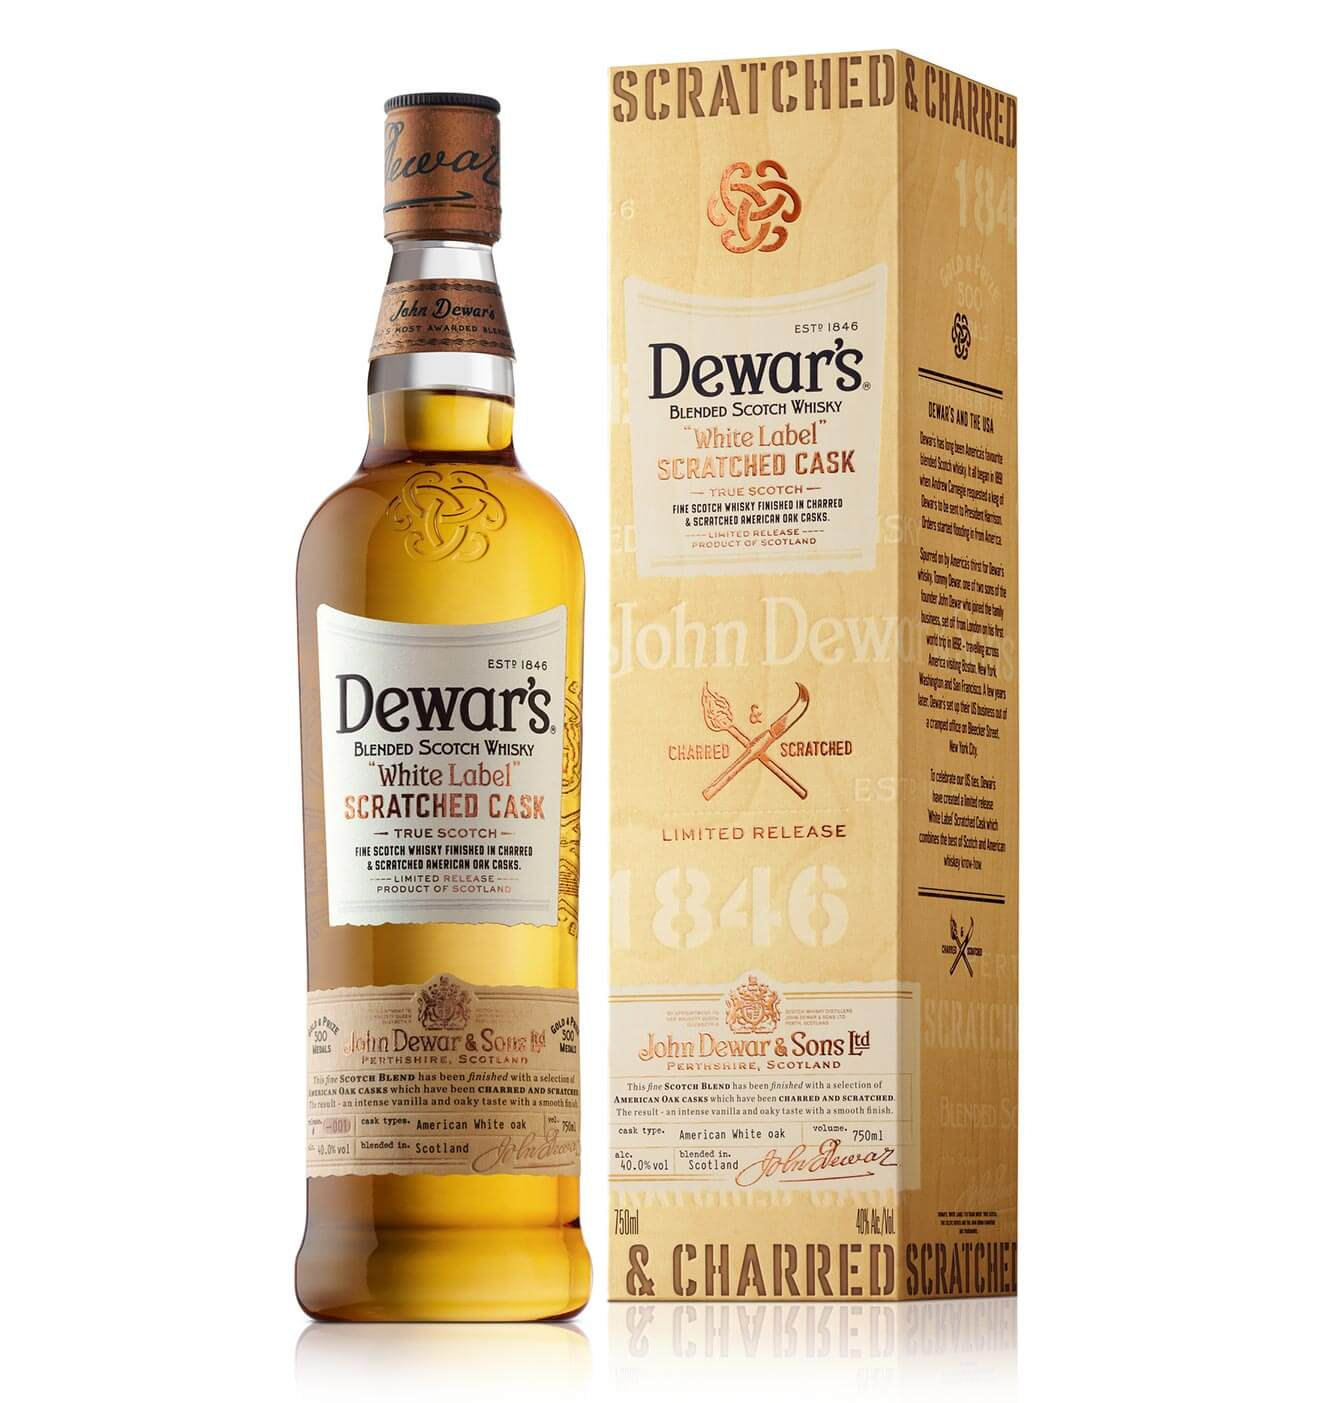 Dewar's Scratched Cask, bottle and package on white